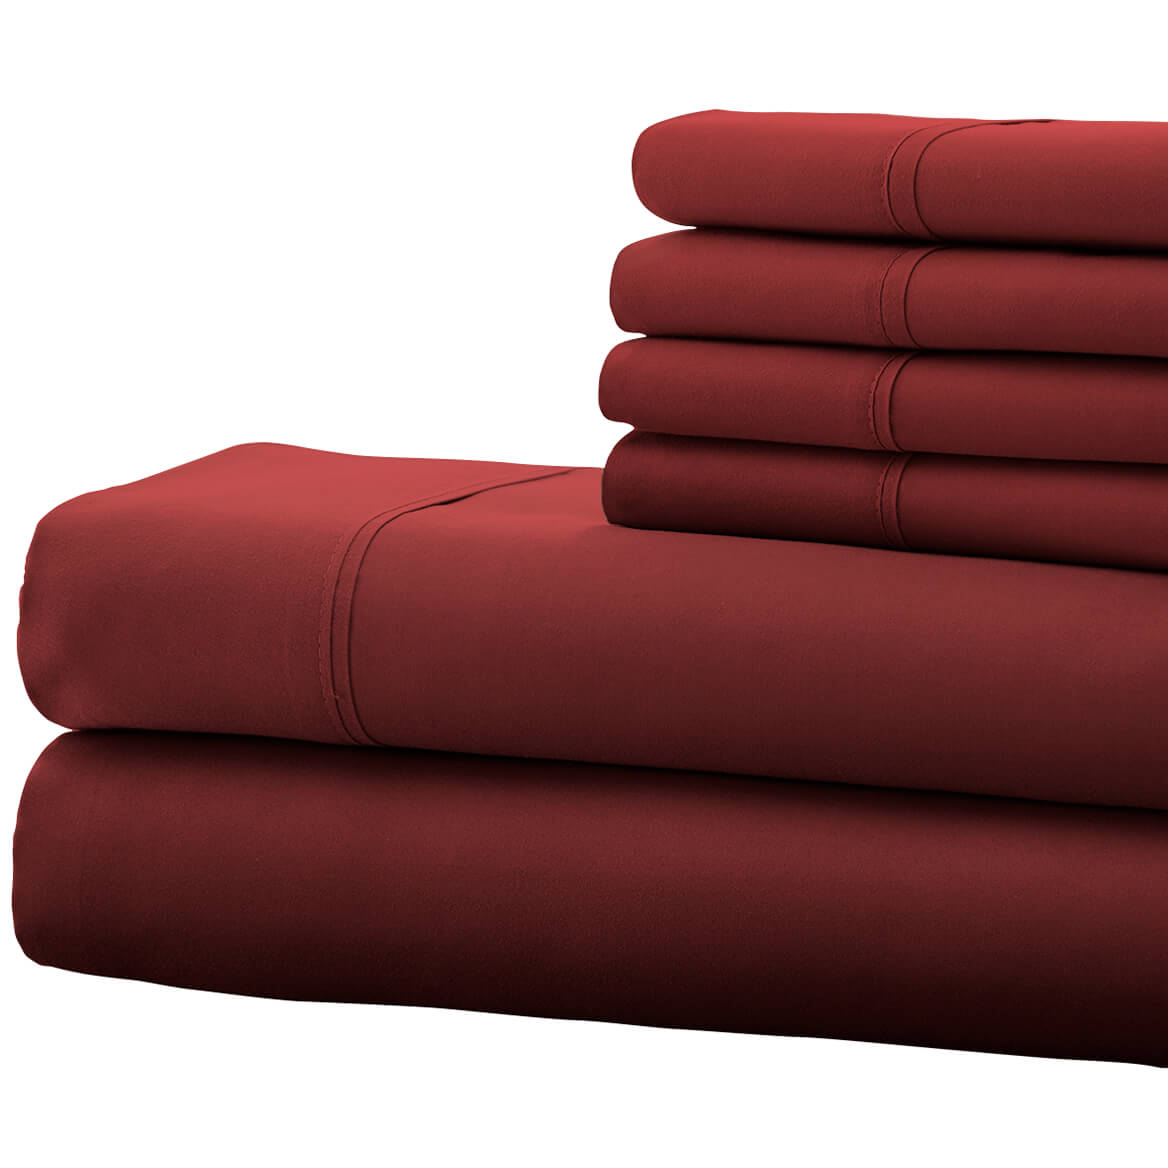 Hotel 5th Ave 4pc Microfiber Sheet Set - Burgundy